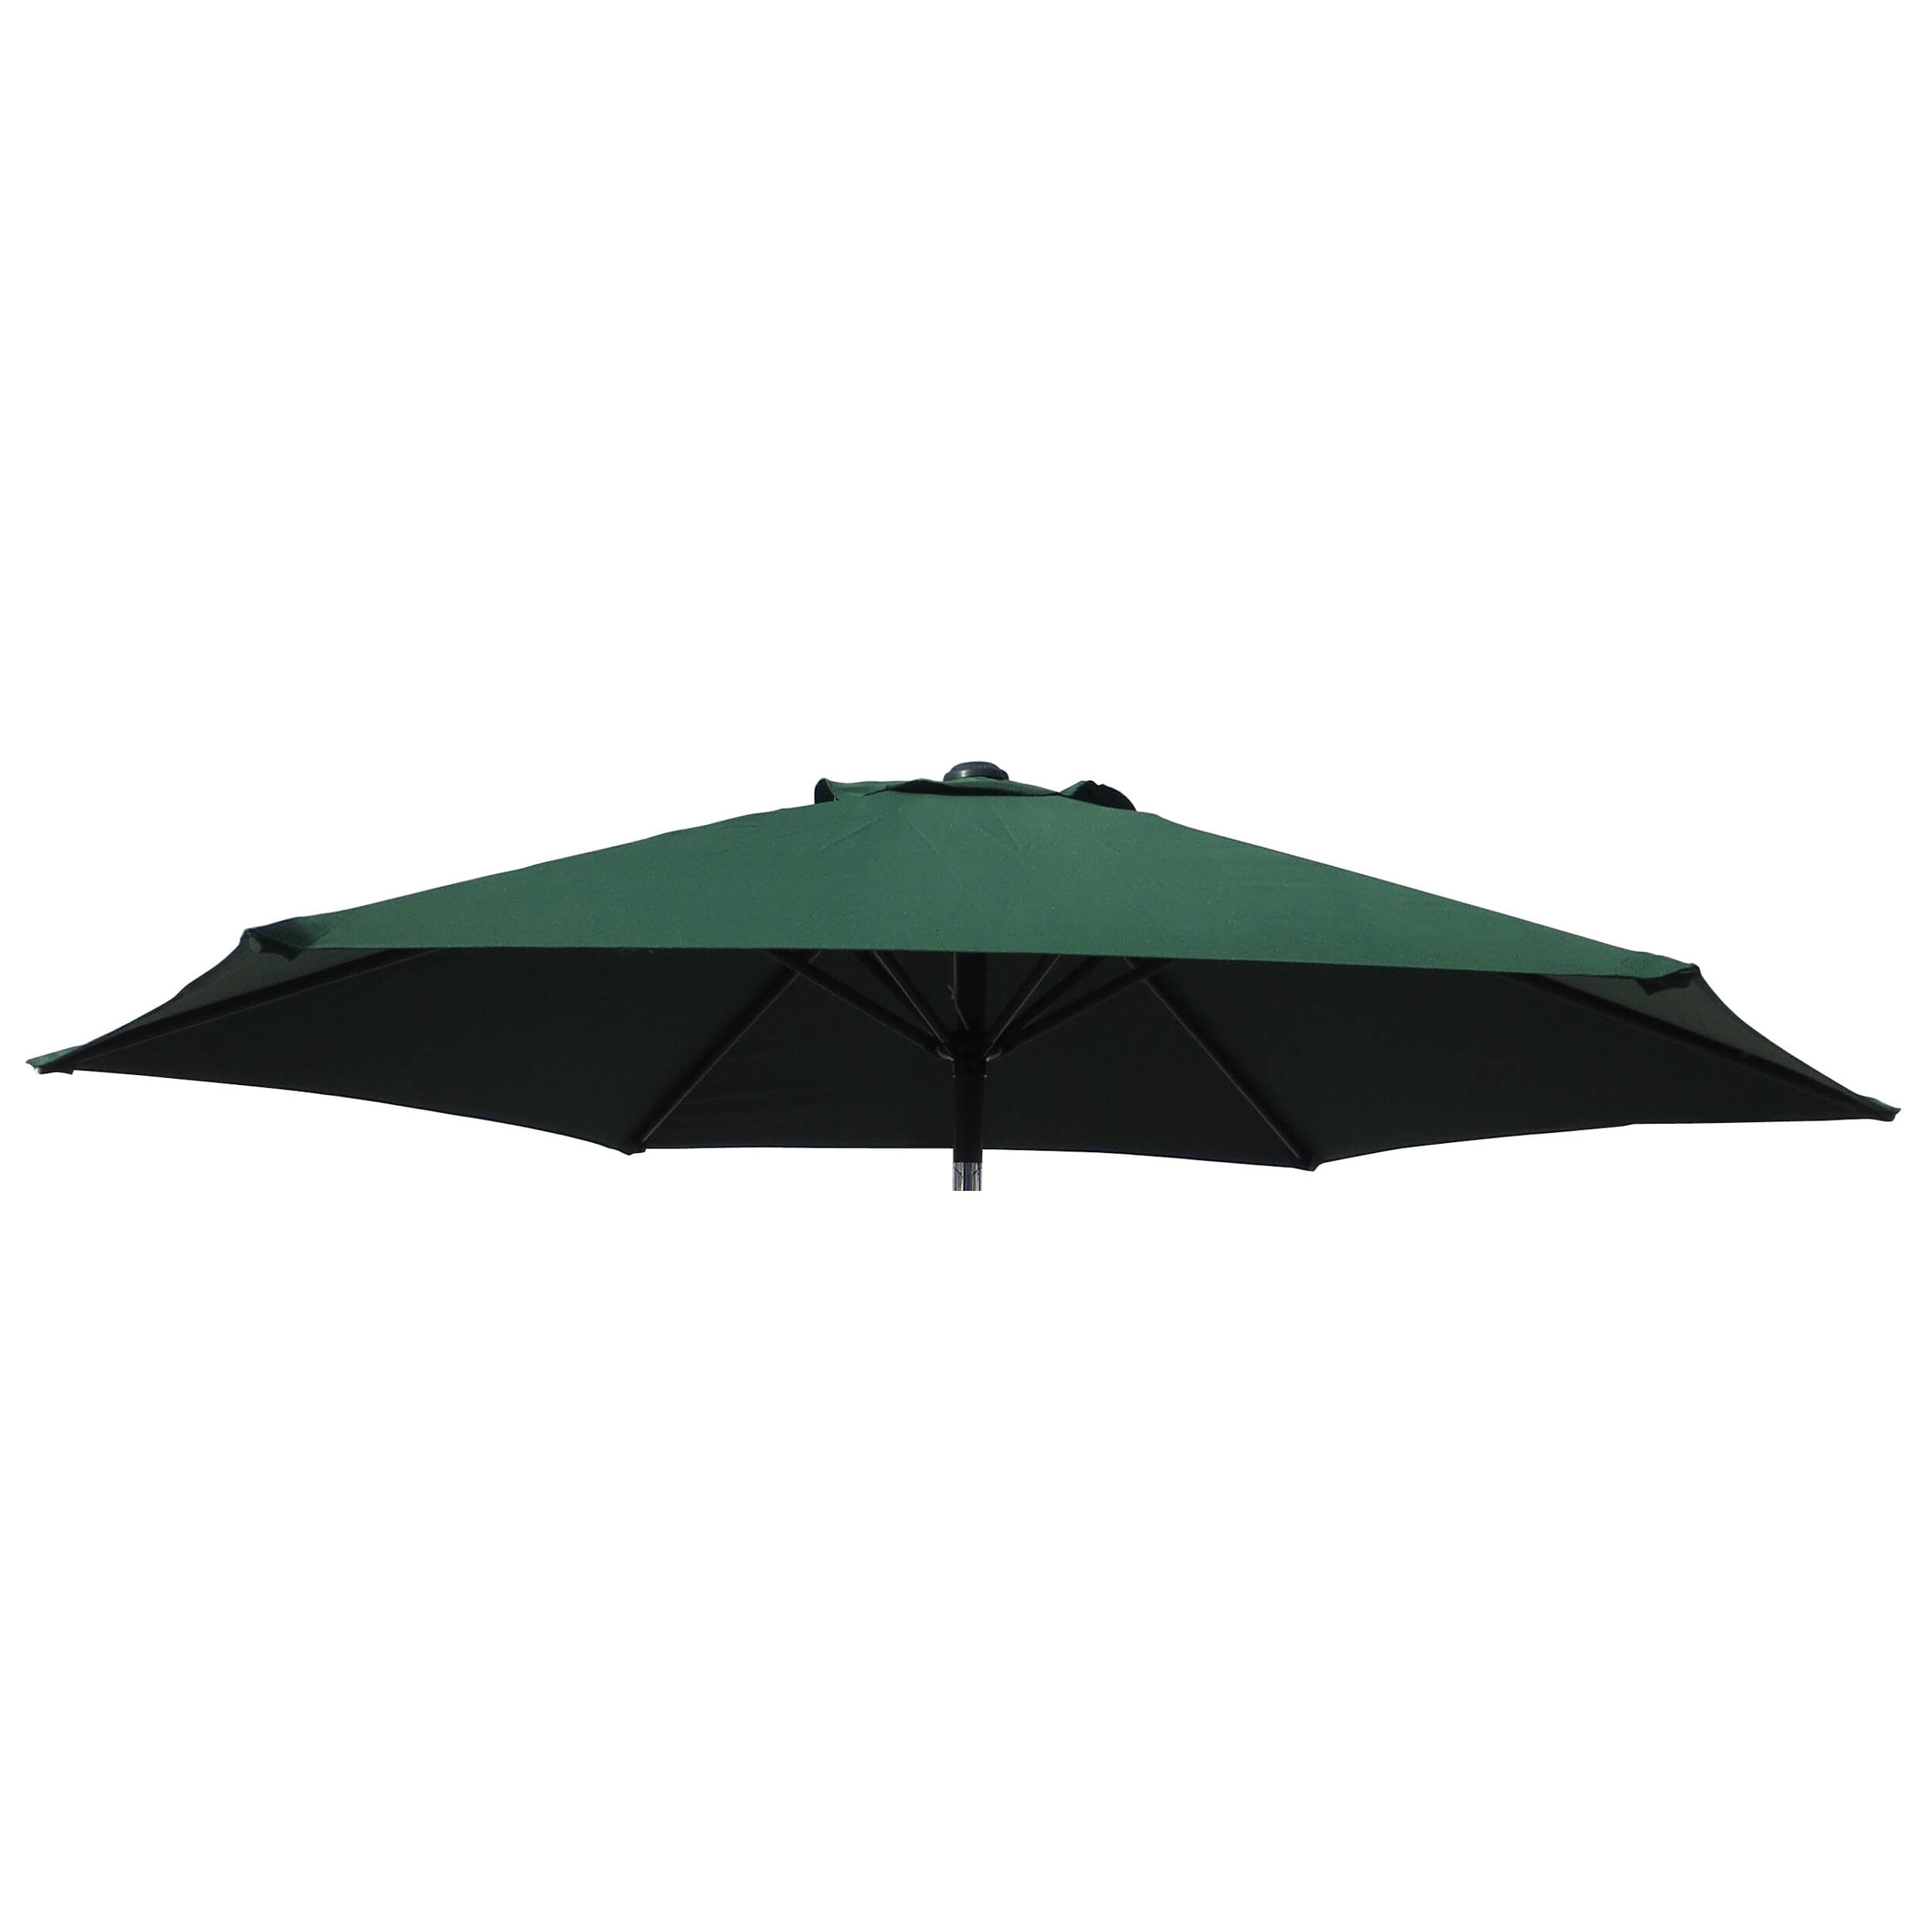 awesome outdoor products of beautiful patio choice aluminum sided galtech best ribs canopy umbrella graphics double replacement